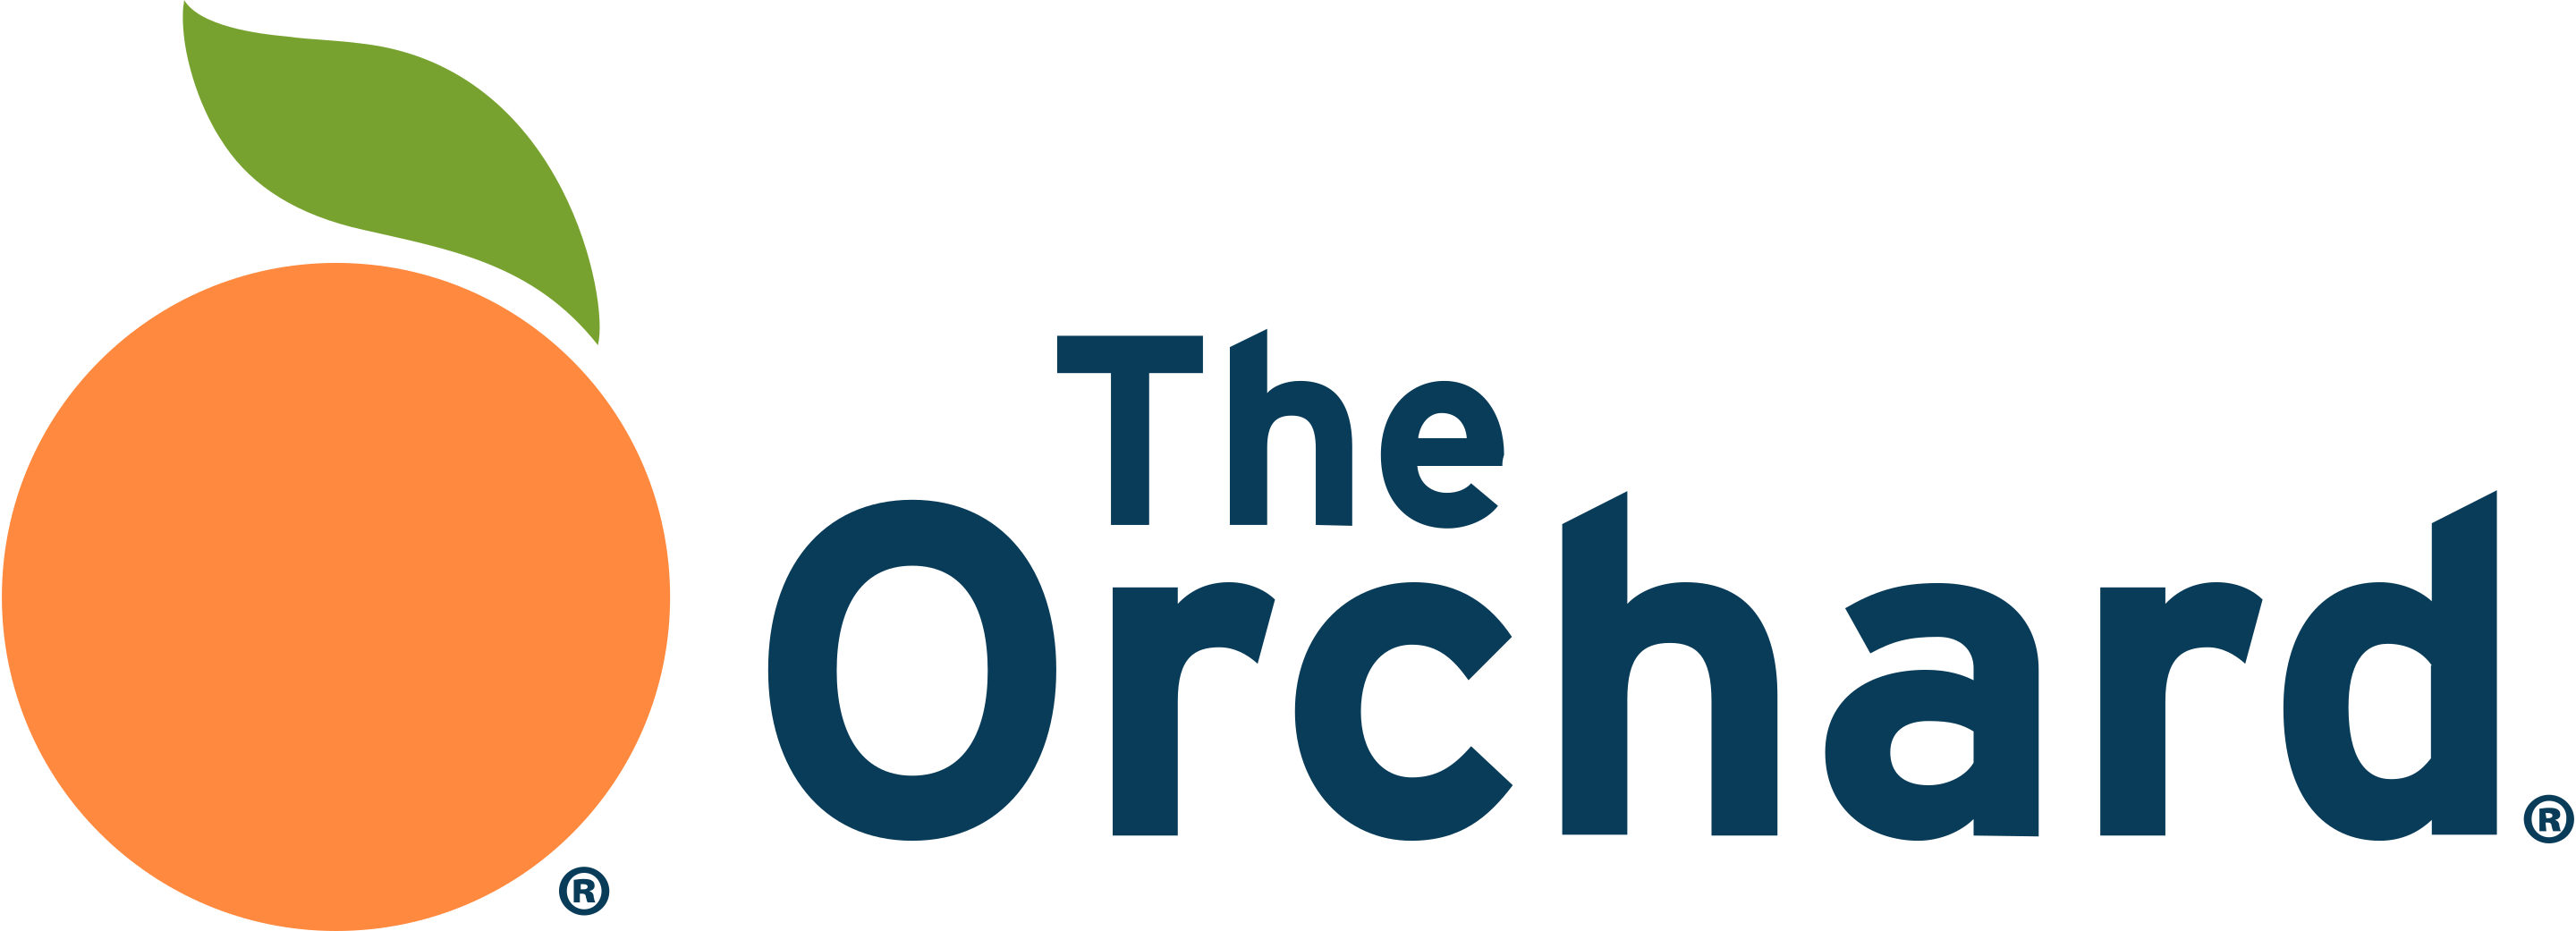 sony the orchard